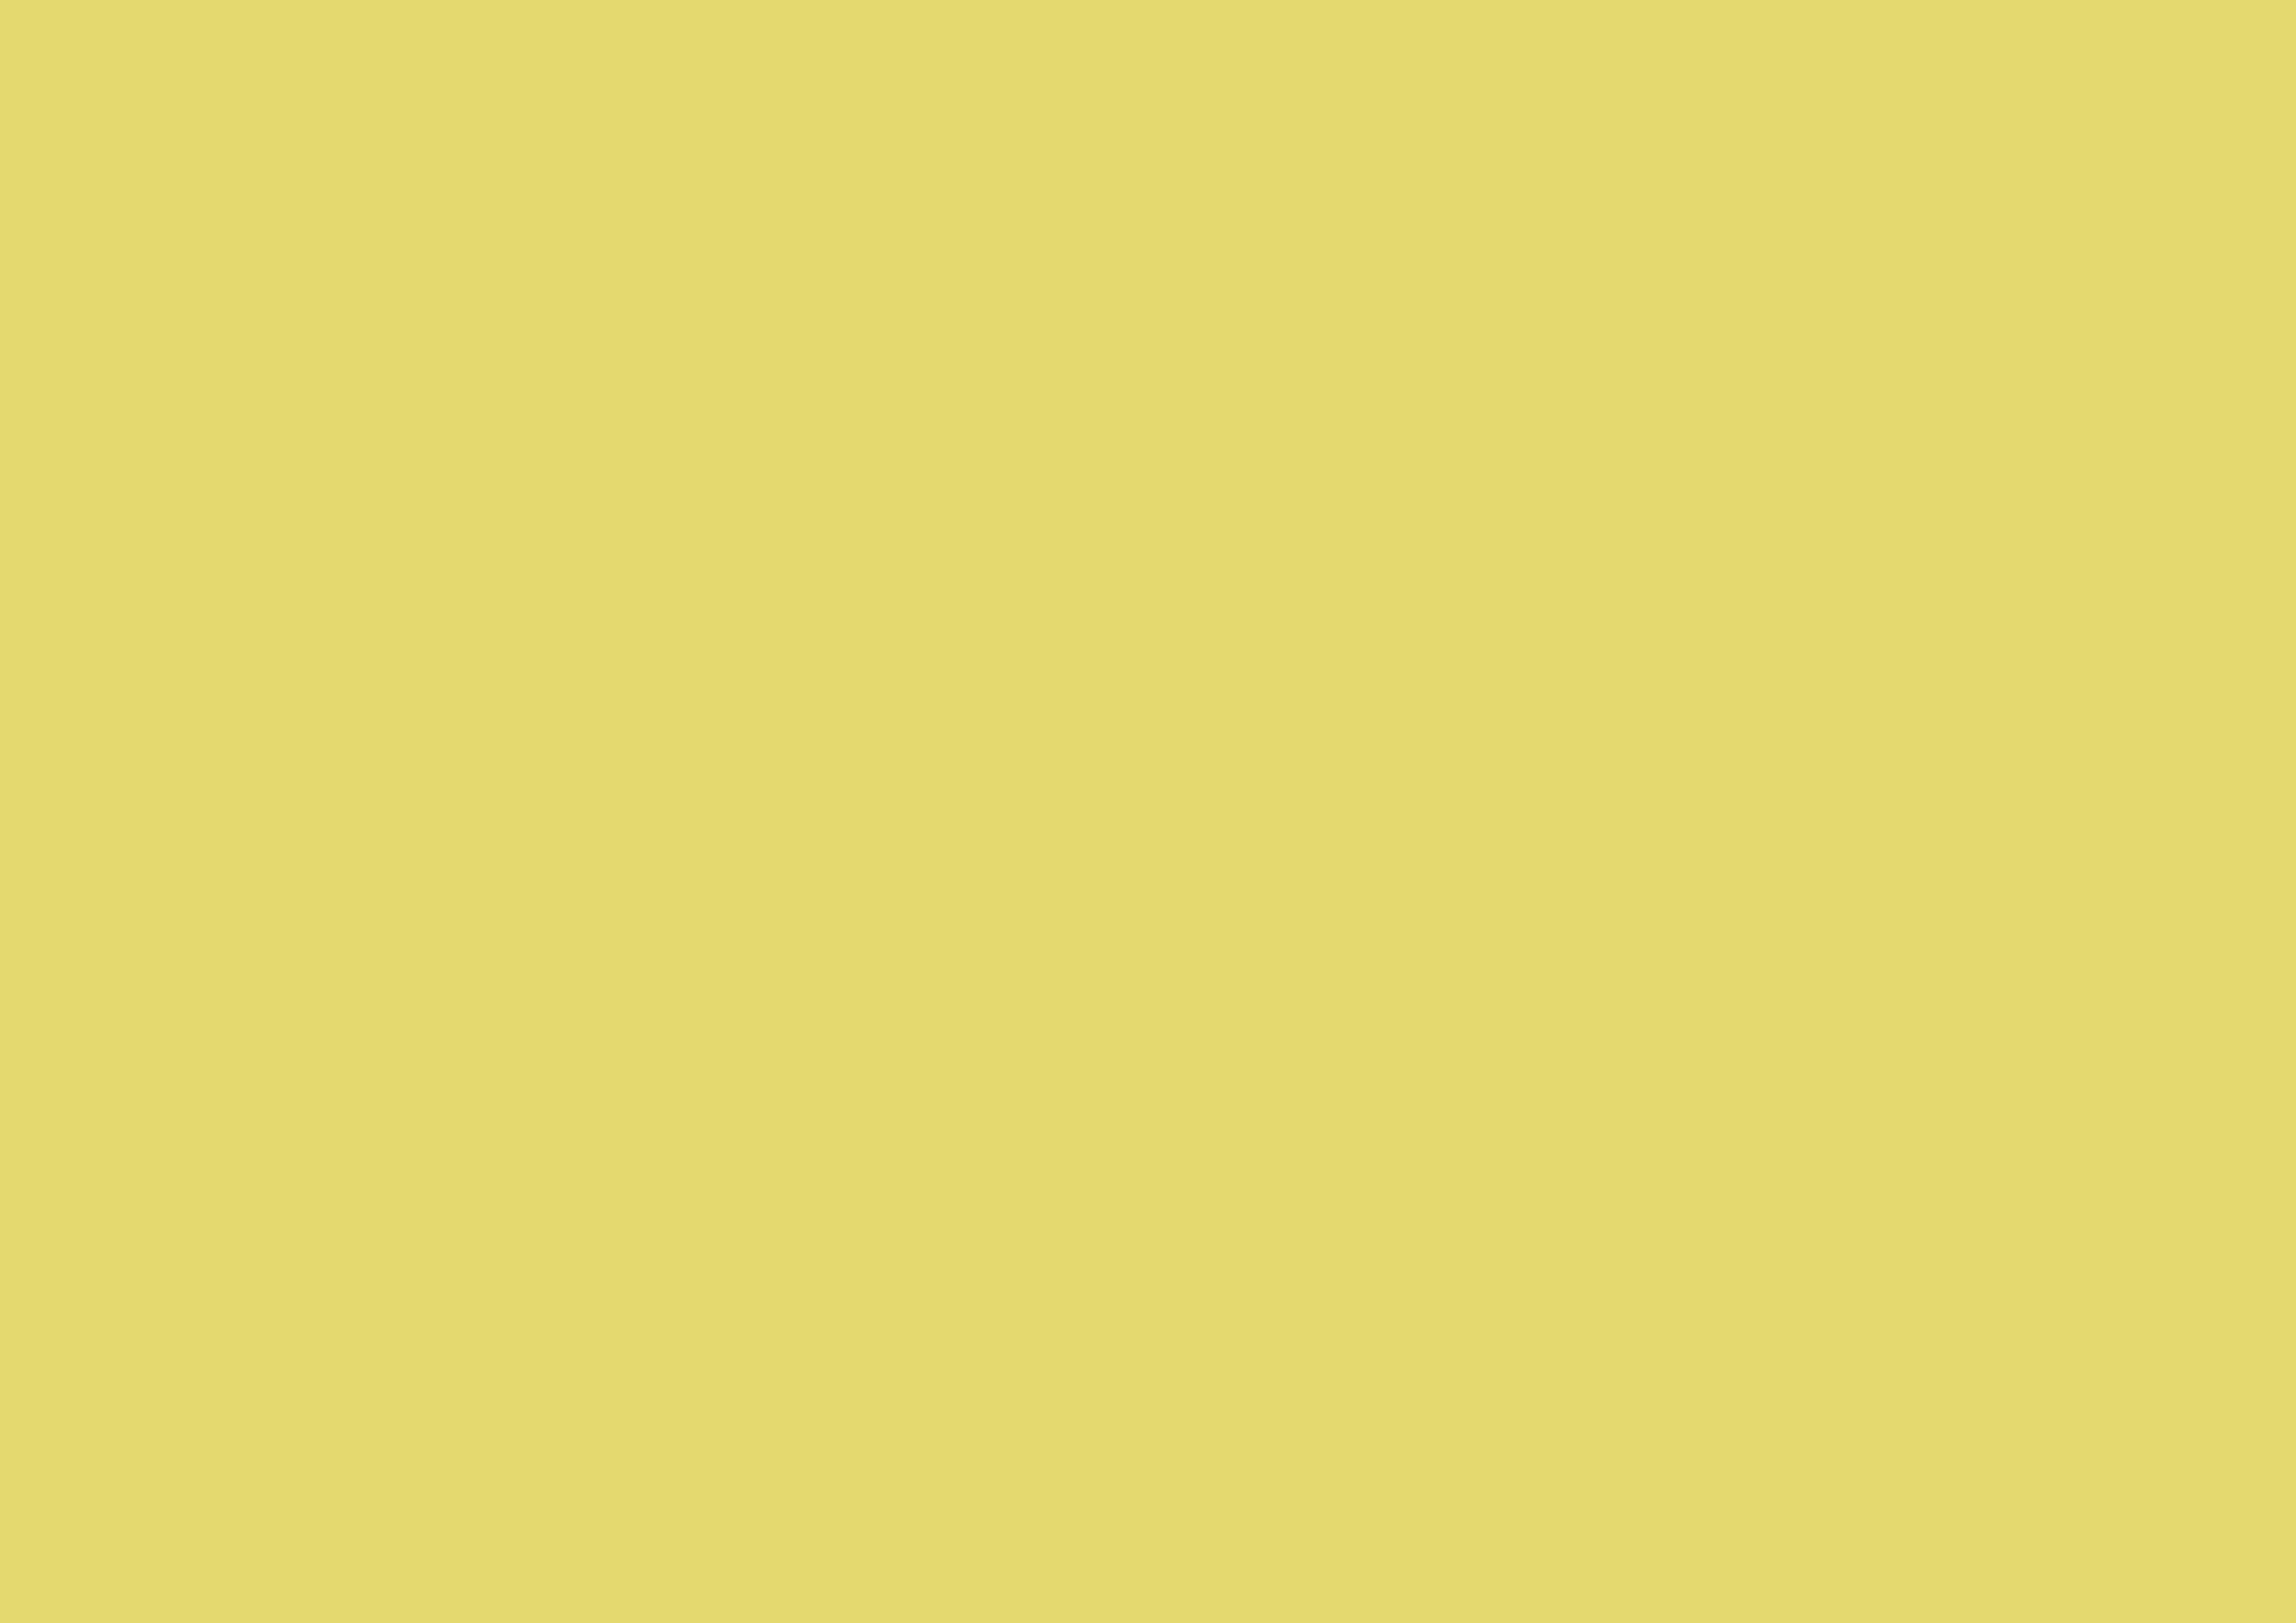 3508x2480 Straw Solid Color Background